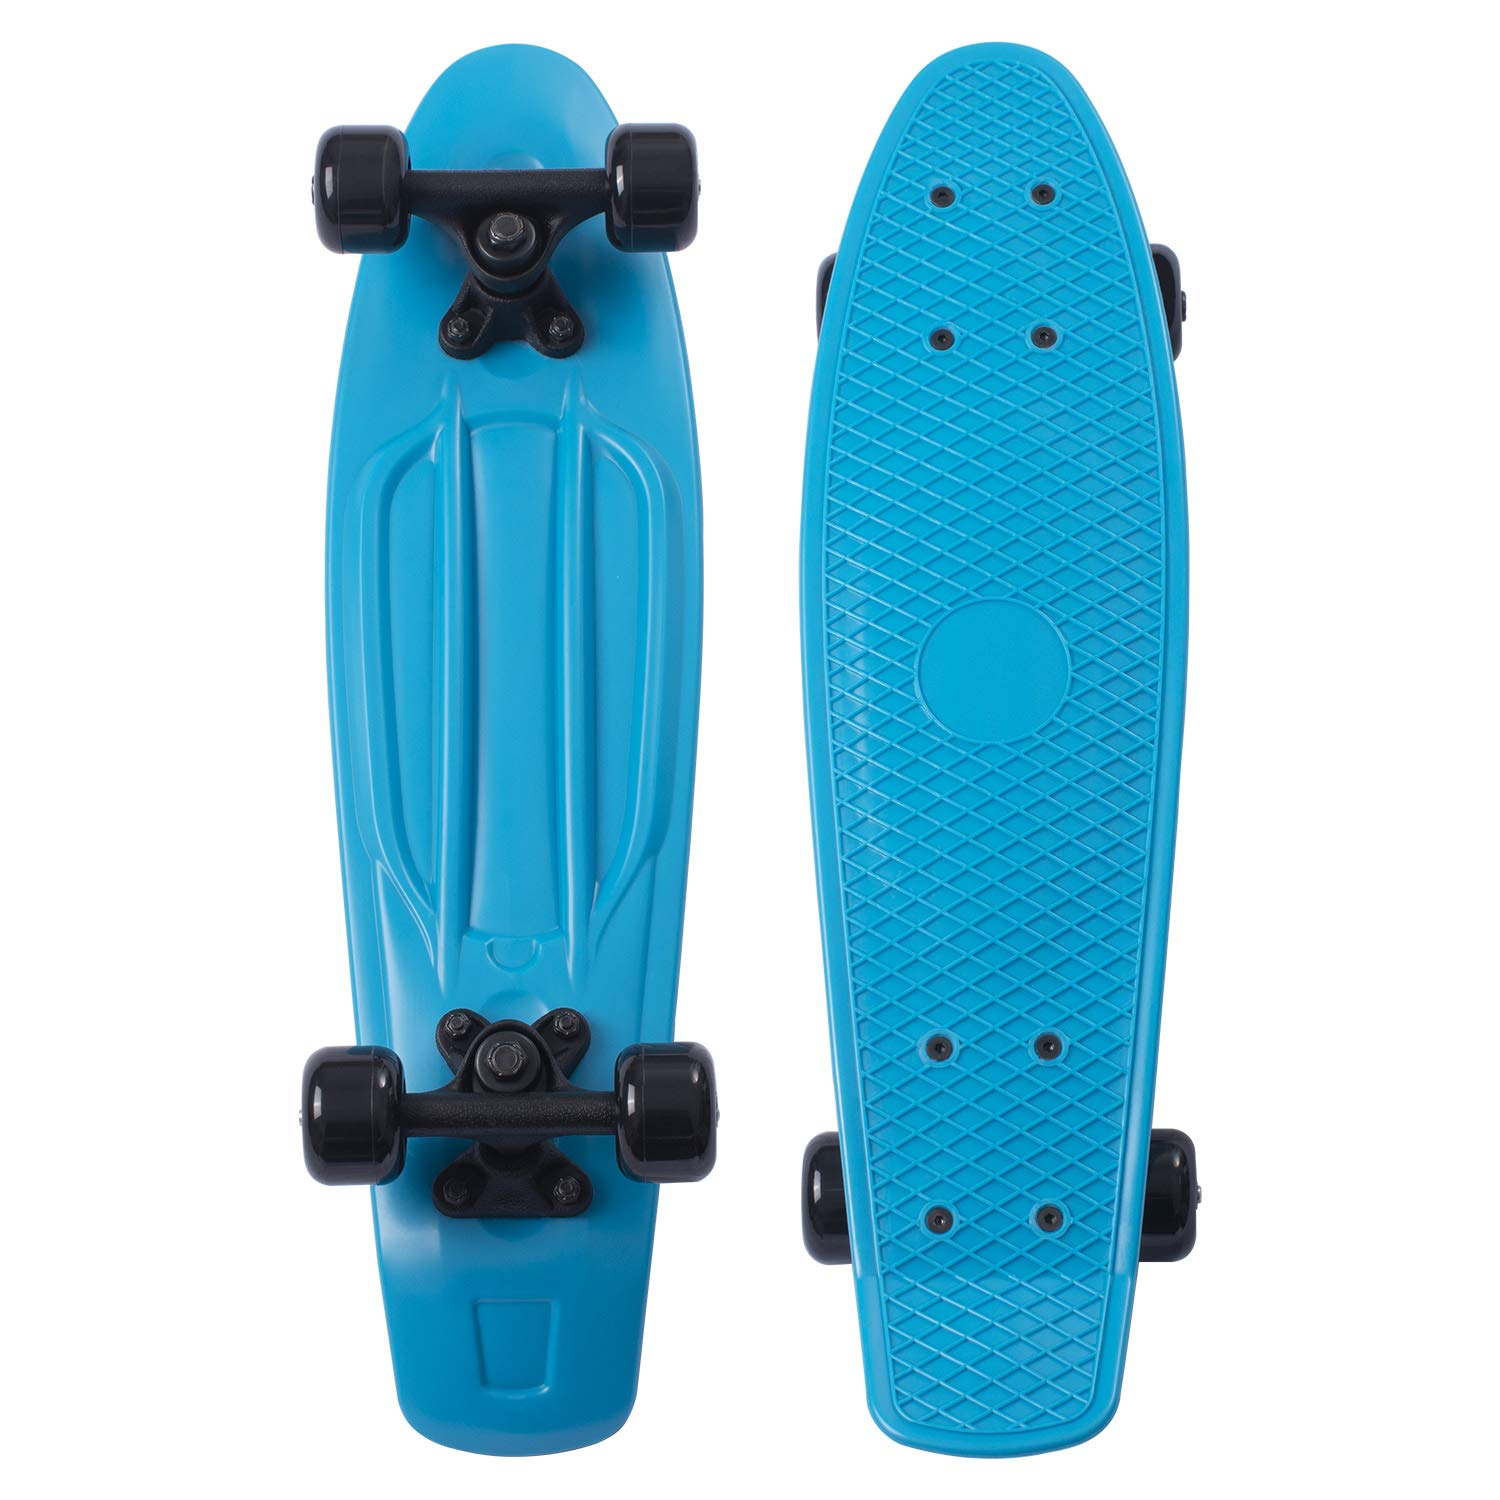 Movendless YD-0001 Quip Skateboard 22.5 Inches Classic Plastic Cruiser Skate Board, Blue by Movendless